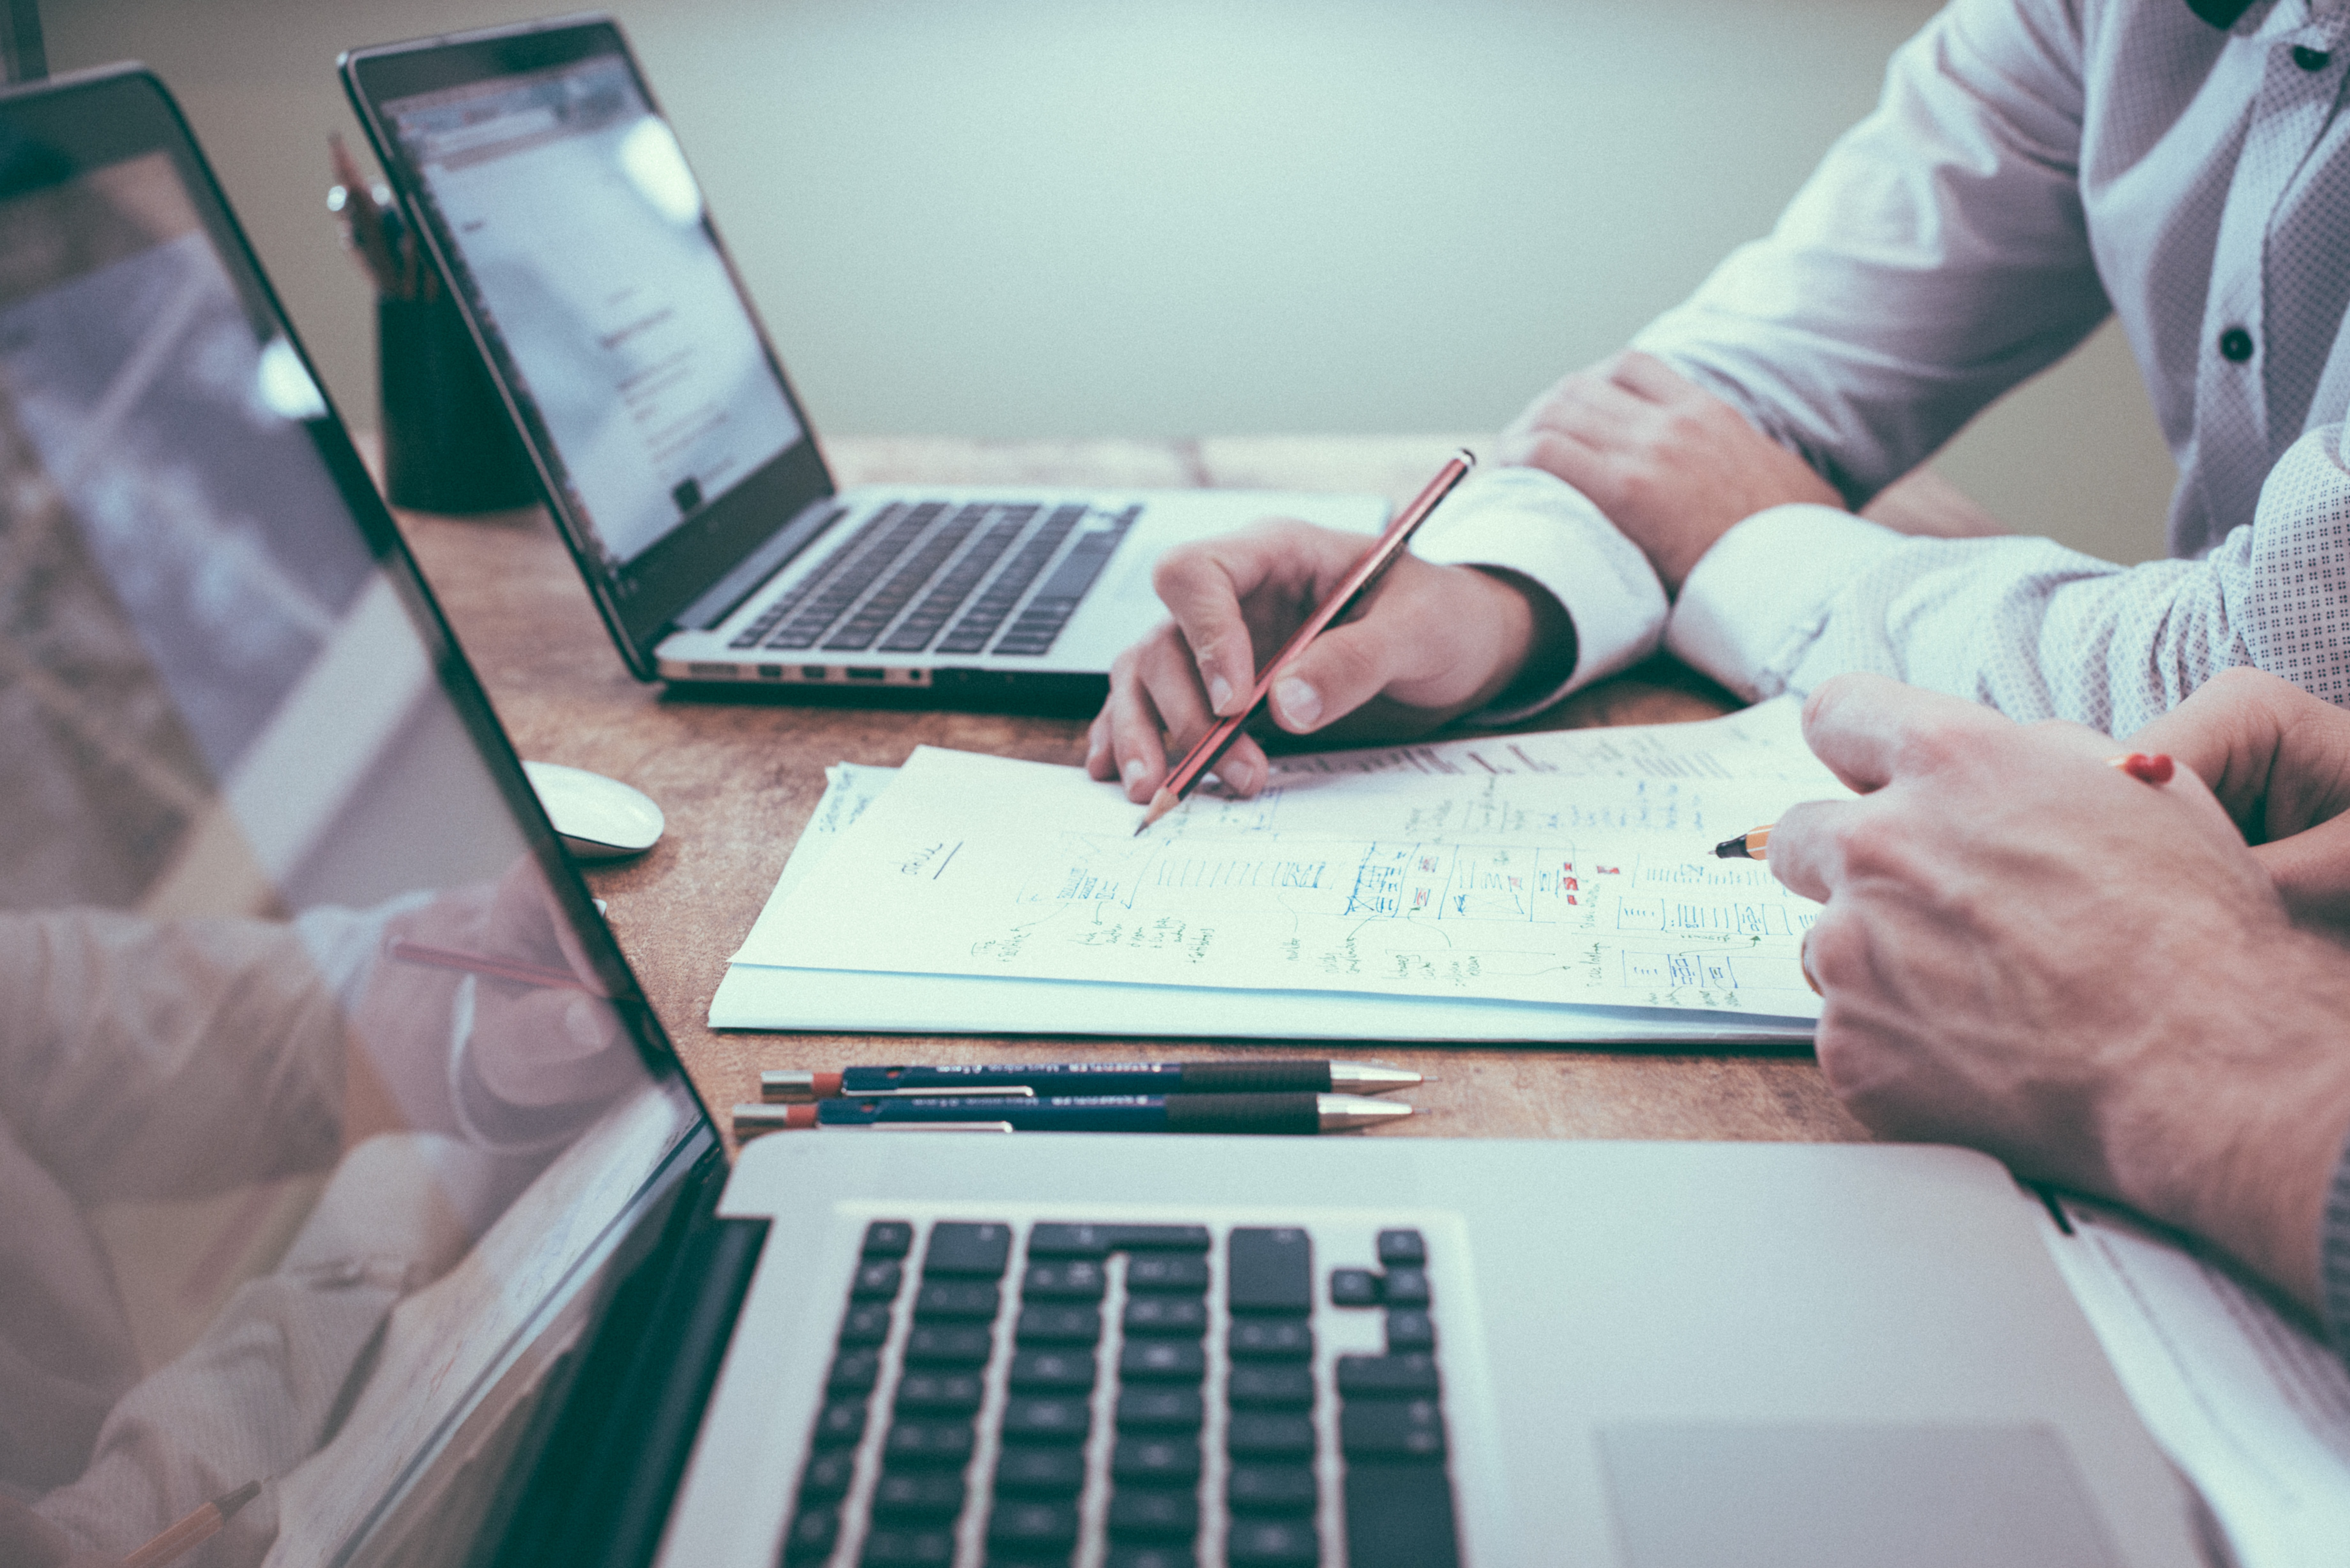 Laptops and list of considerations for appointing a new charity trustee. Photo by Scott Graham on Unsplash